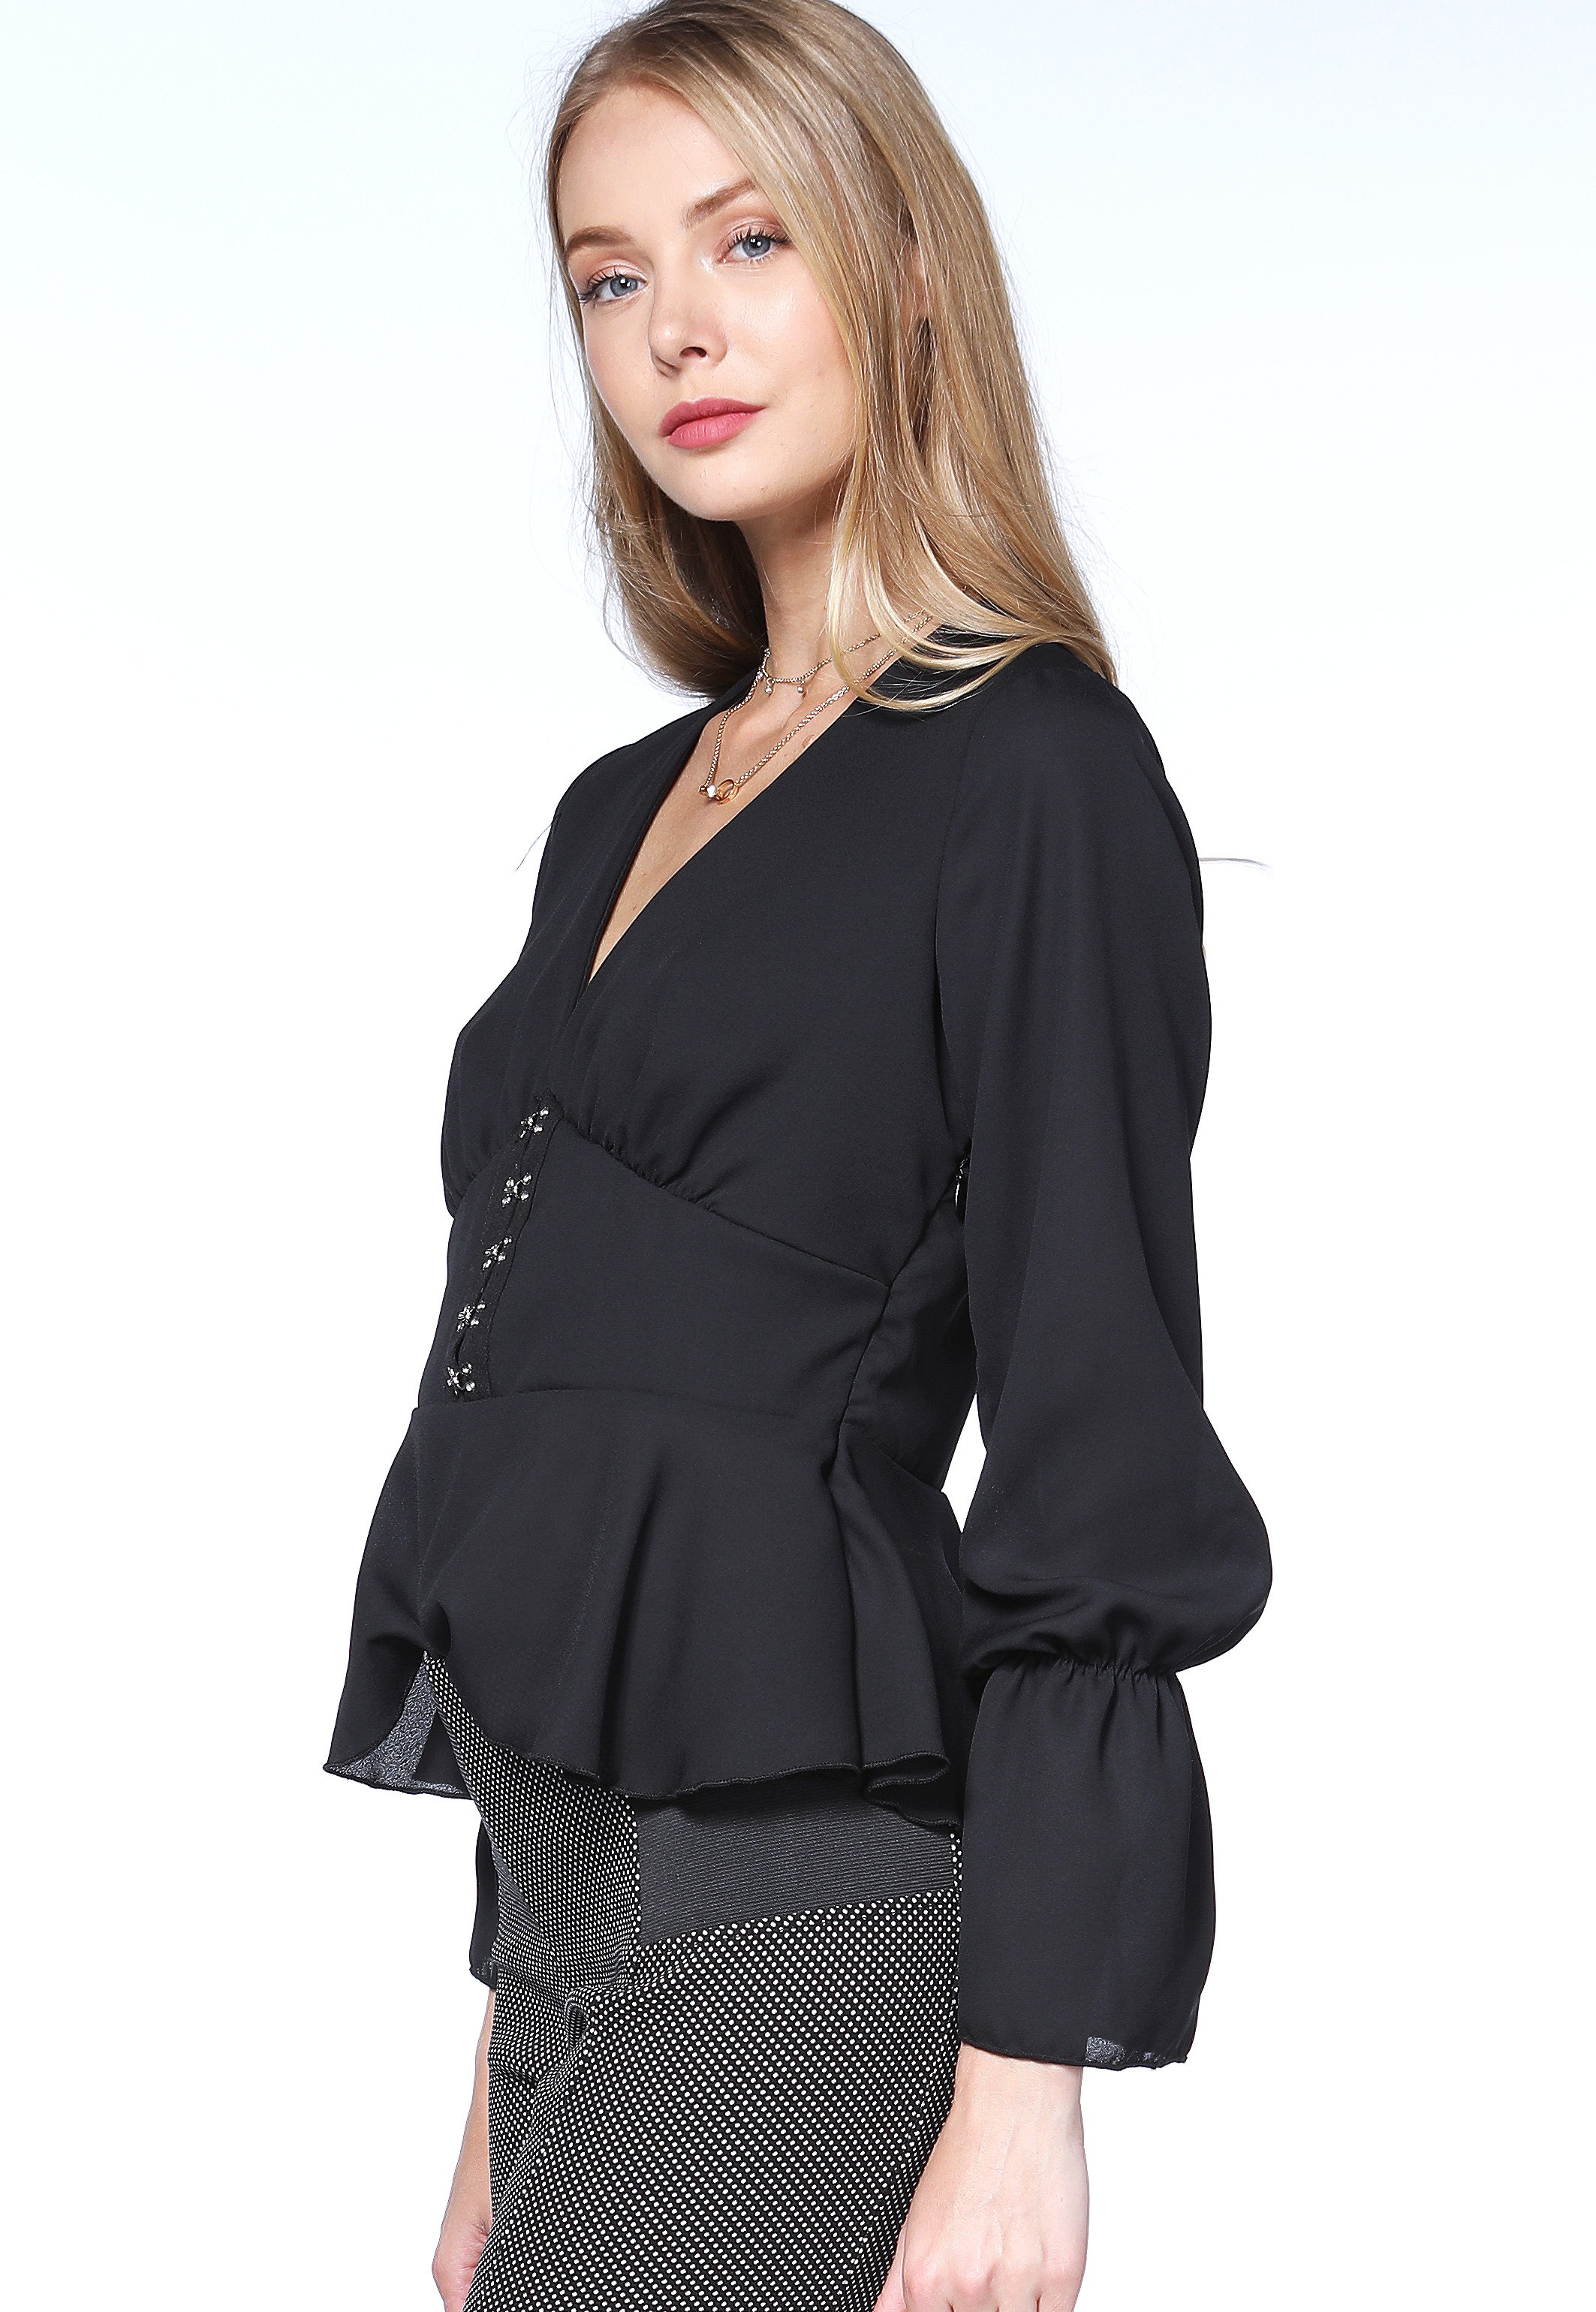 Hook-And-Eye Dressy Top